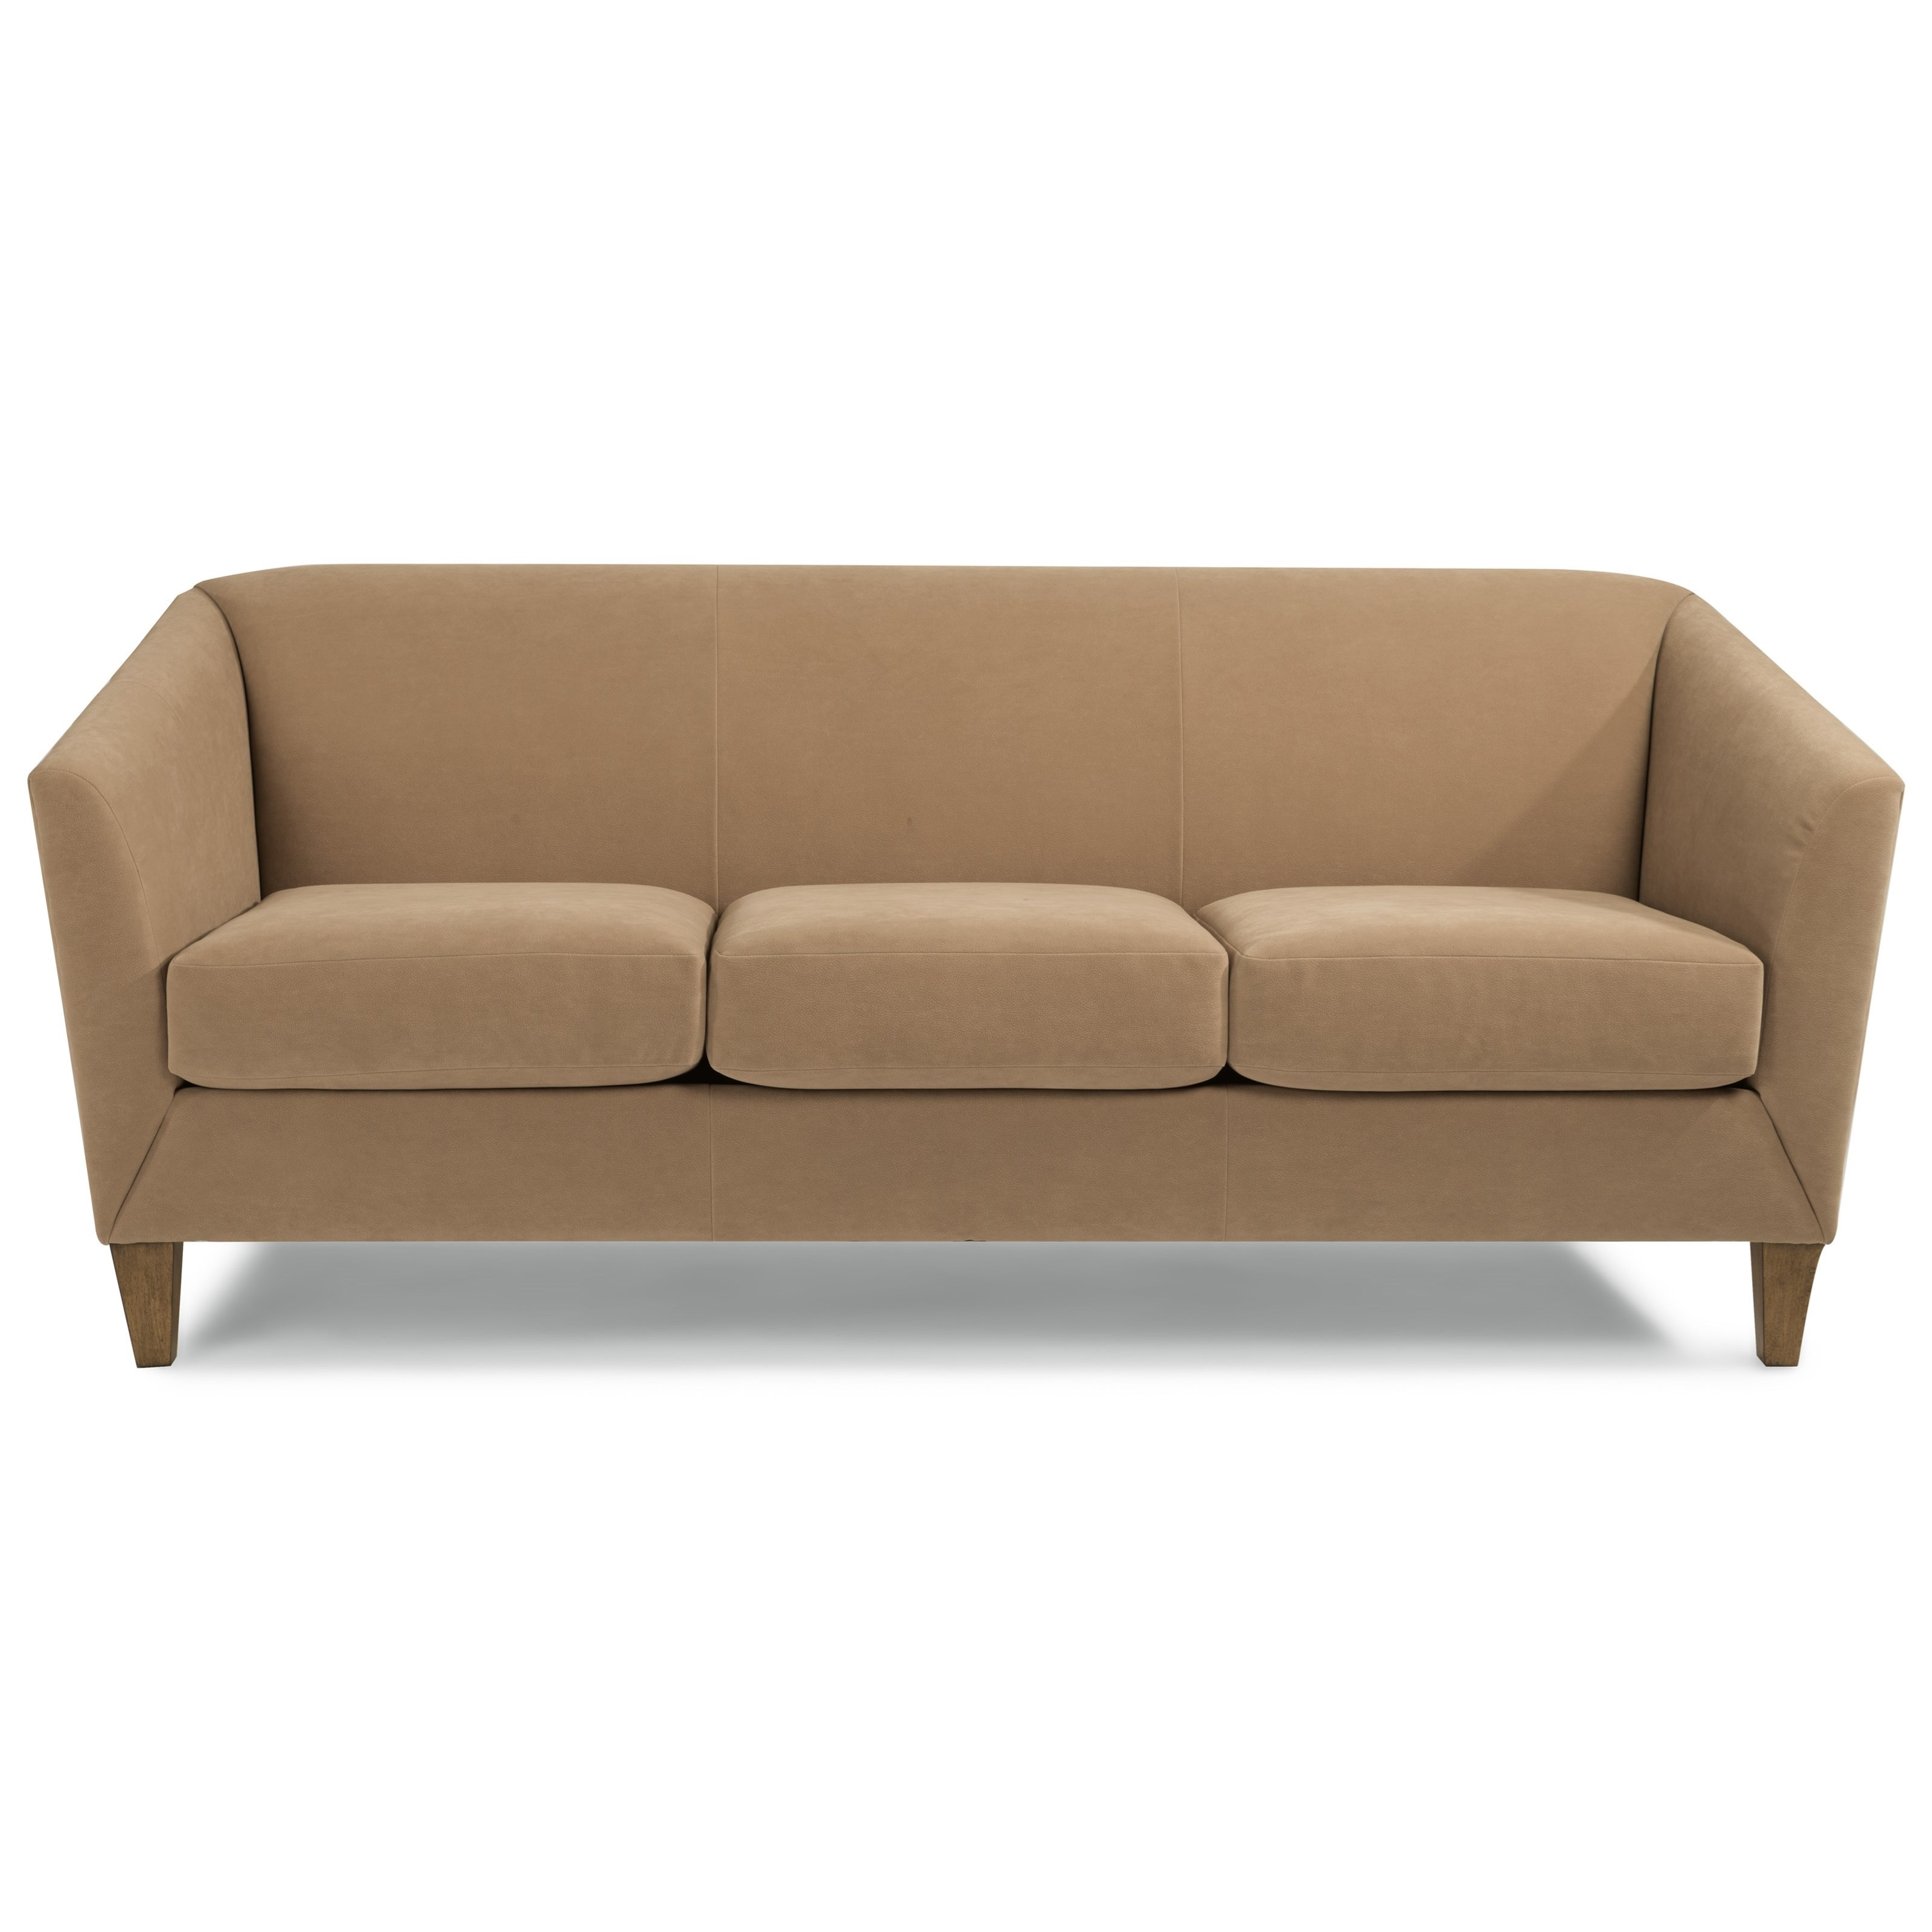 Flexsteel Emery Transitional Sofa With Flare Tapered Arms